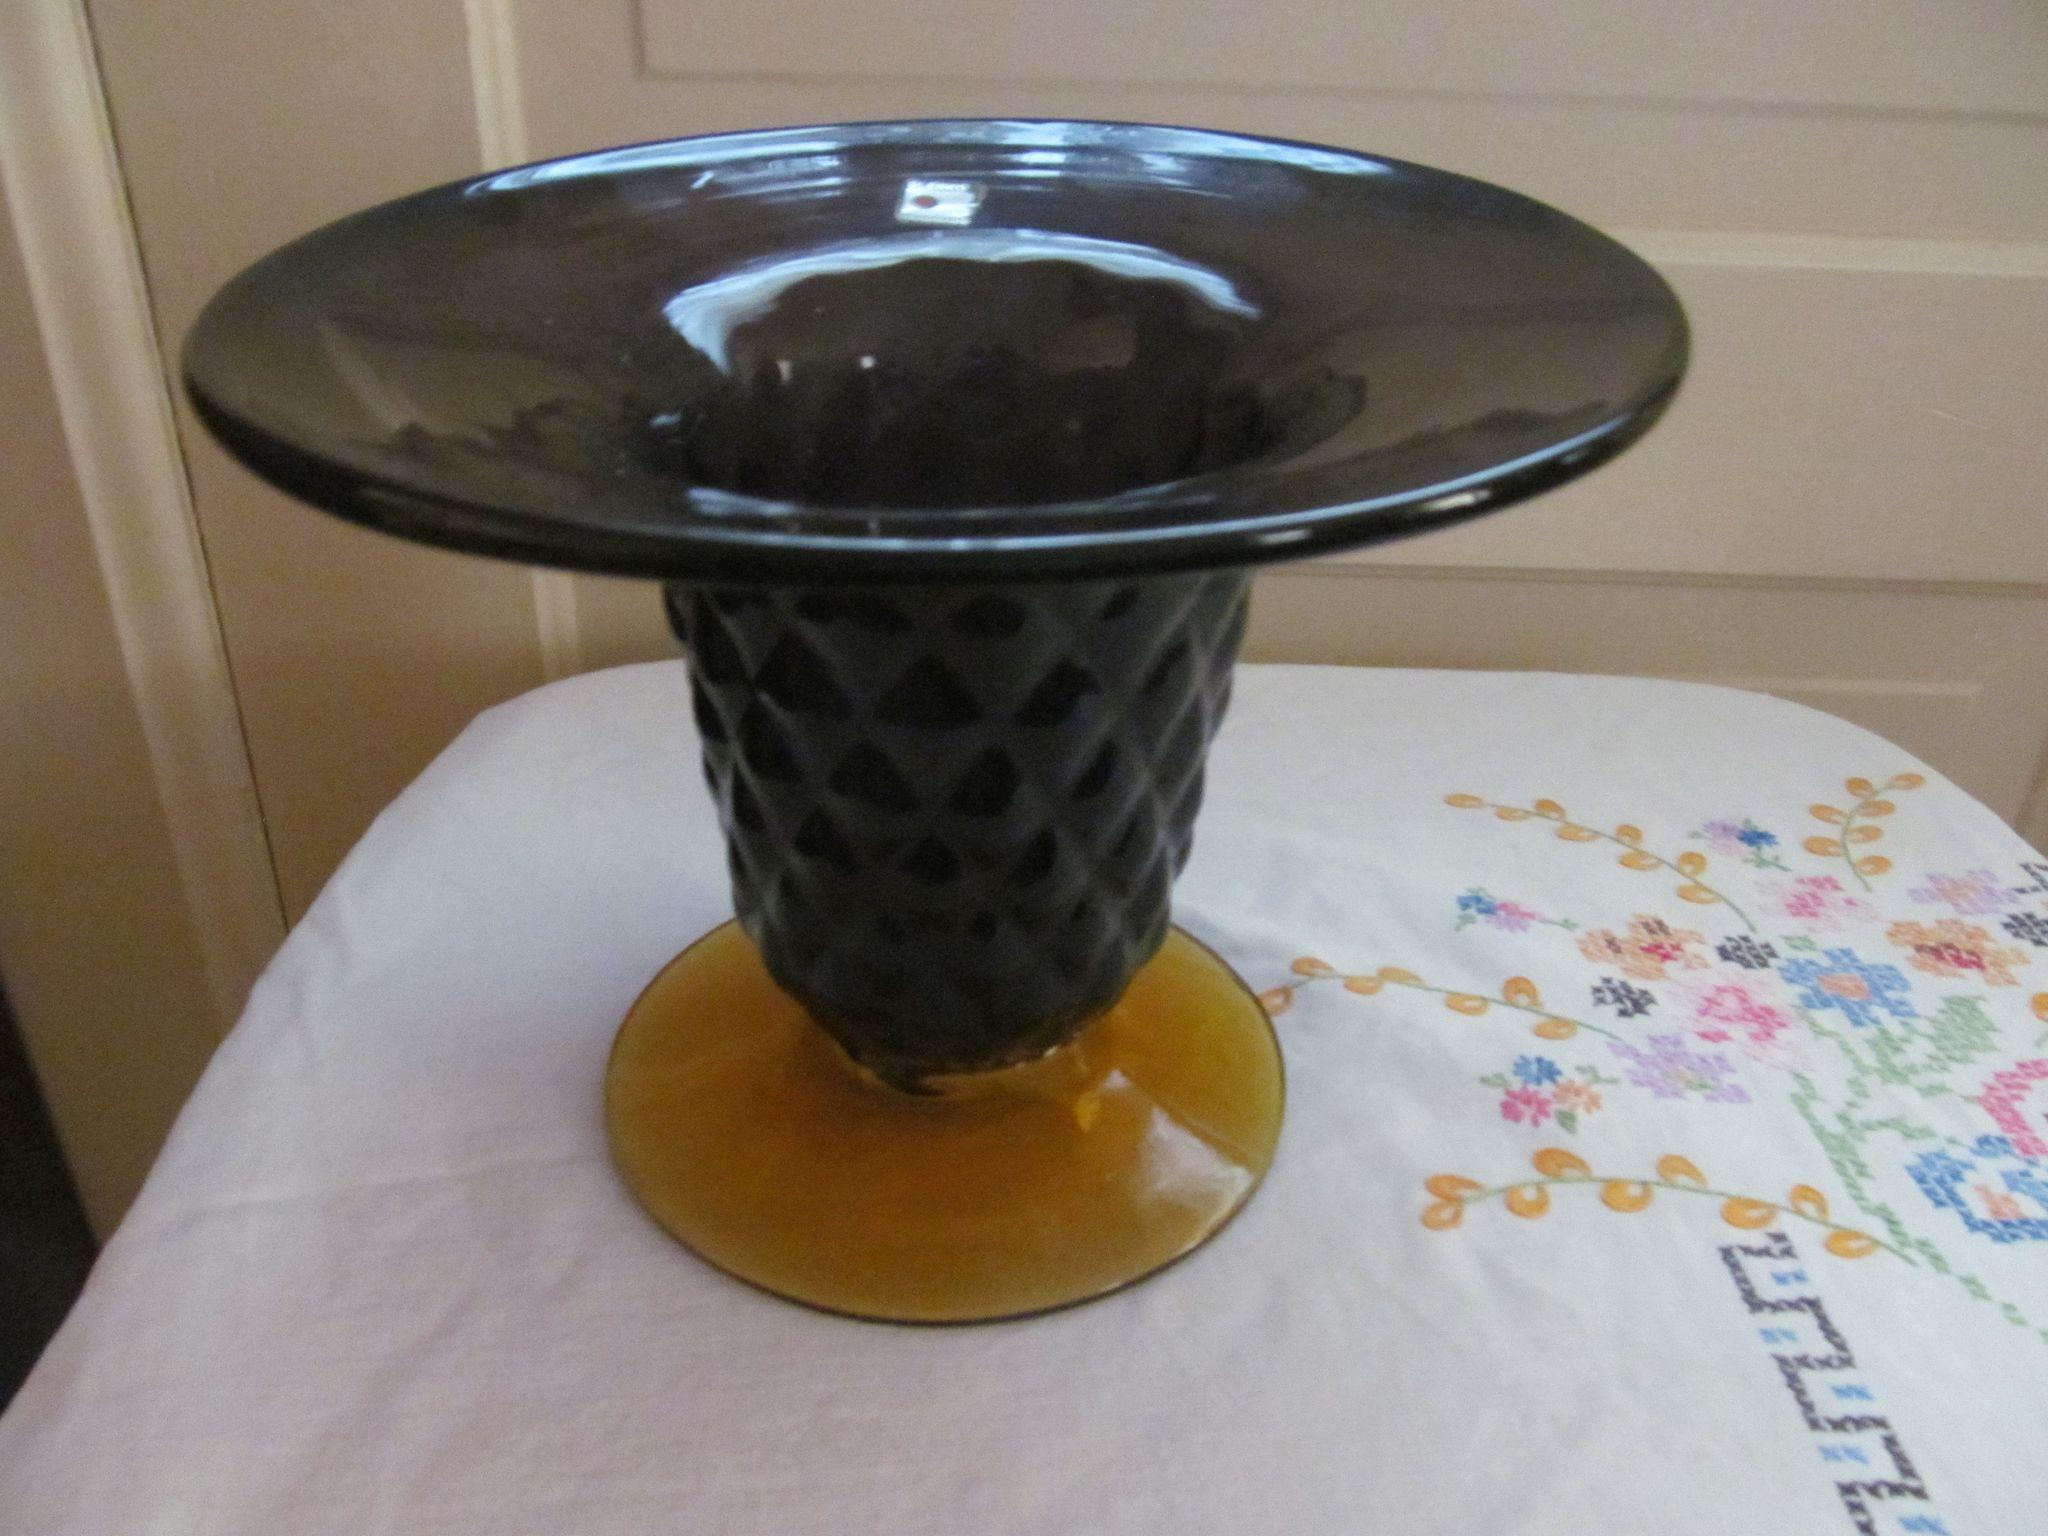 Blenko Centerpiece Console Bowl Vase with Label